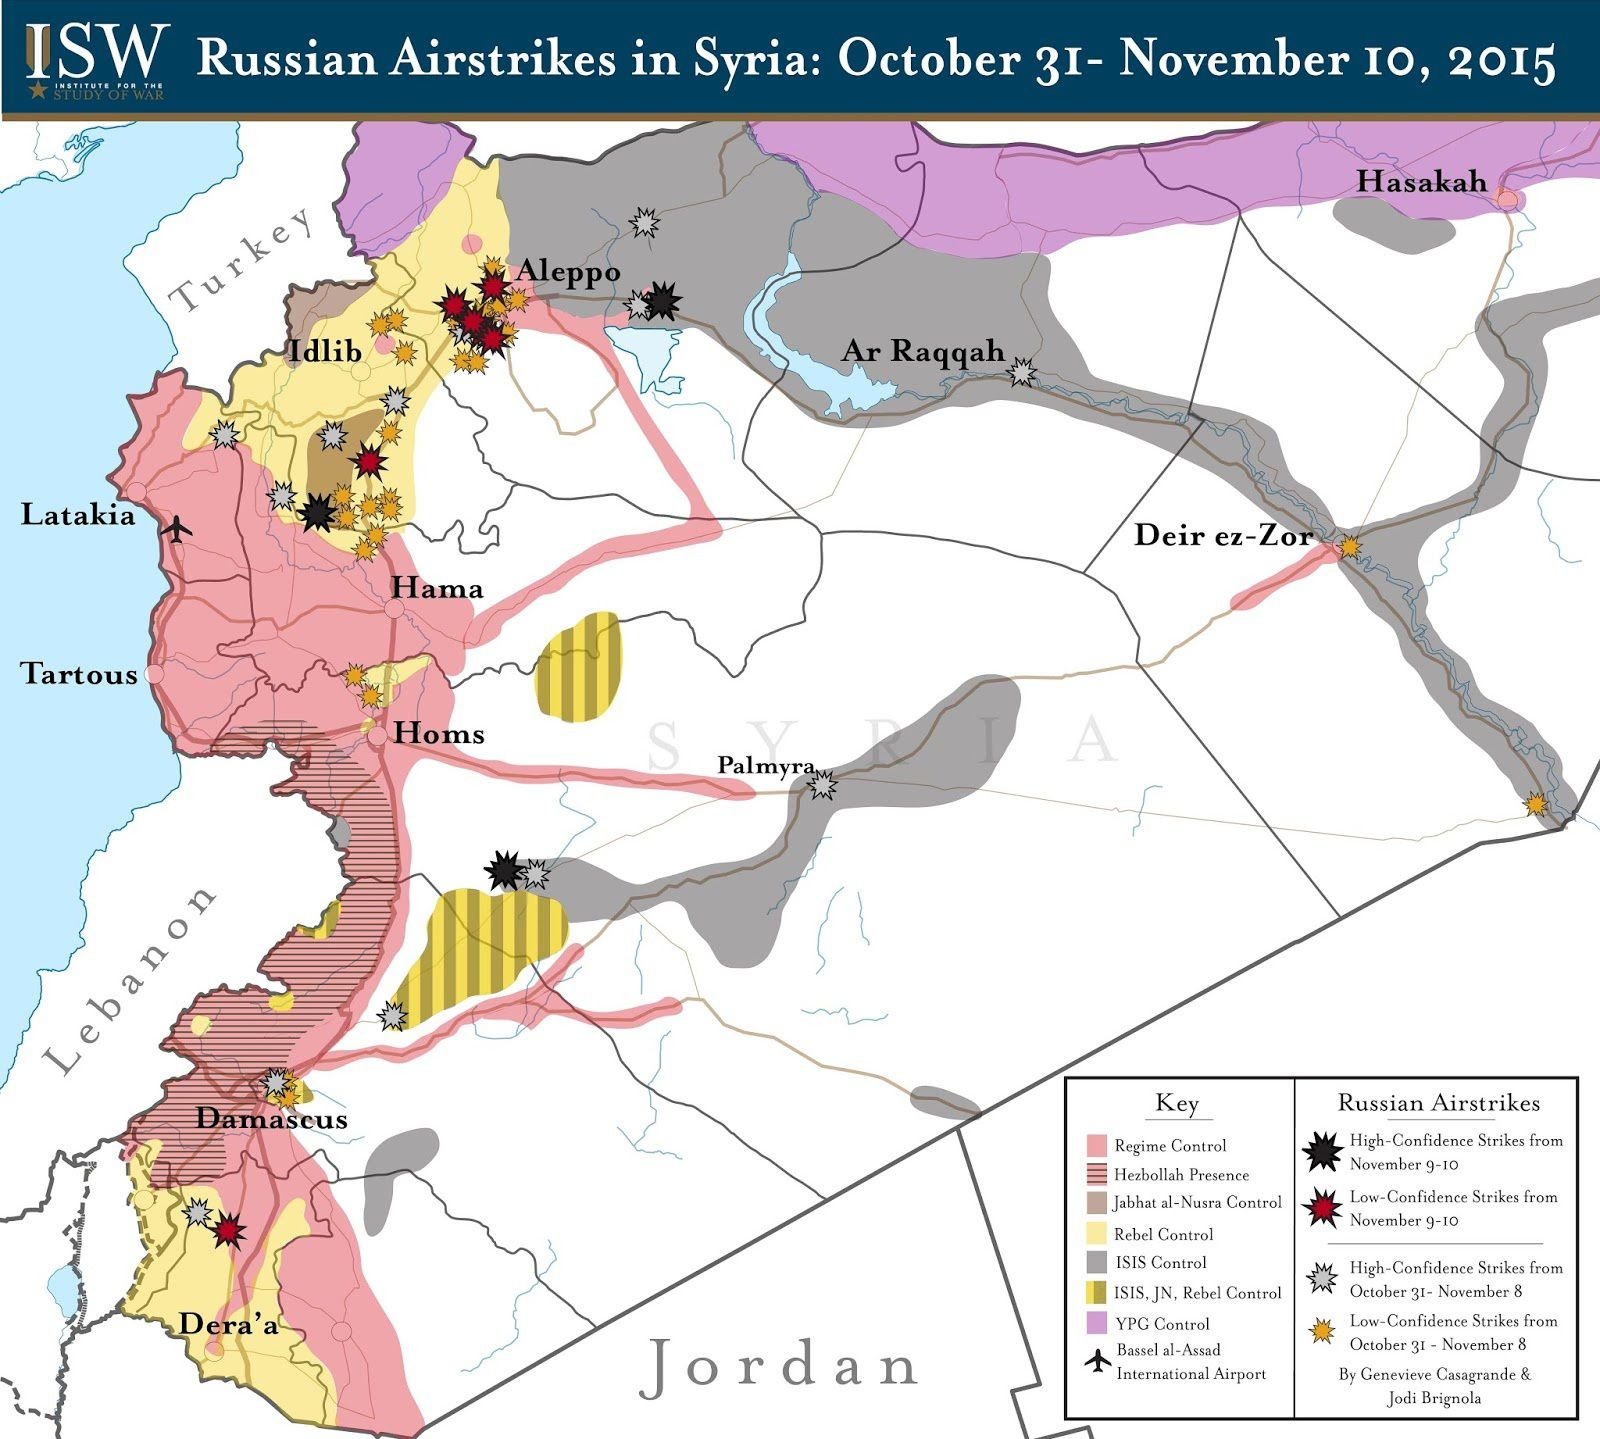 Russian Airstrikes in Syria: October 31 - November 10, 2015